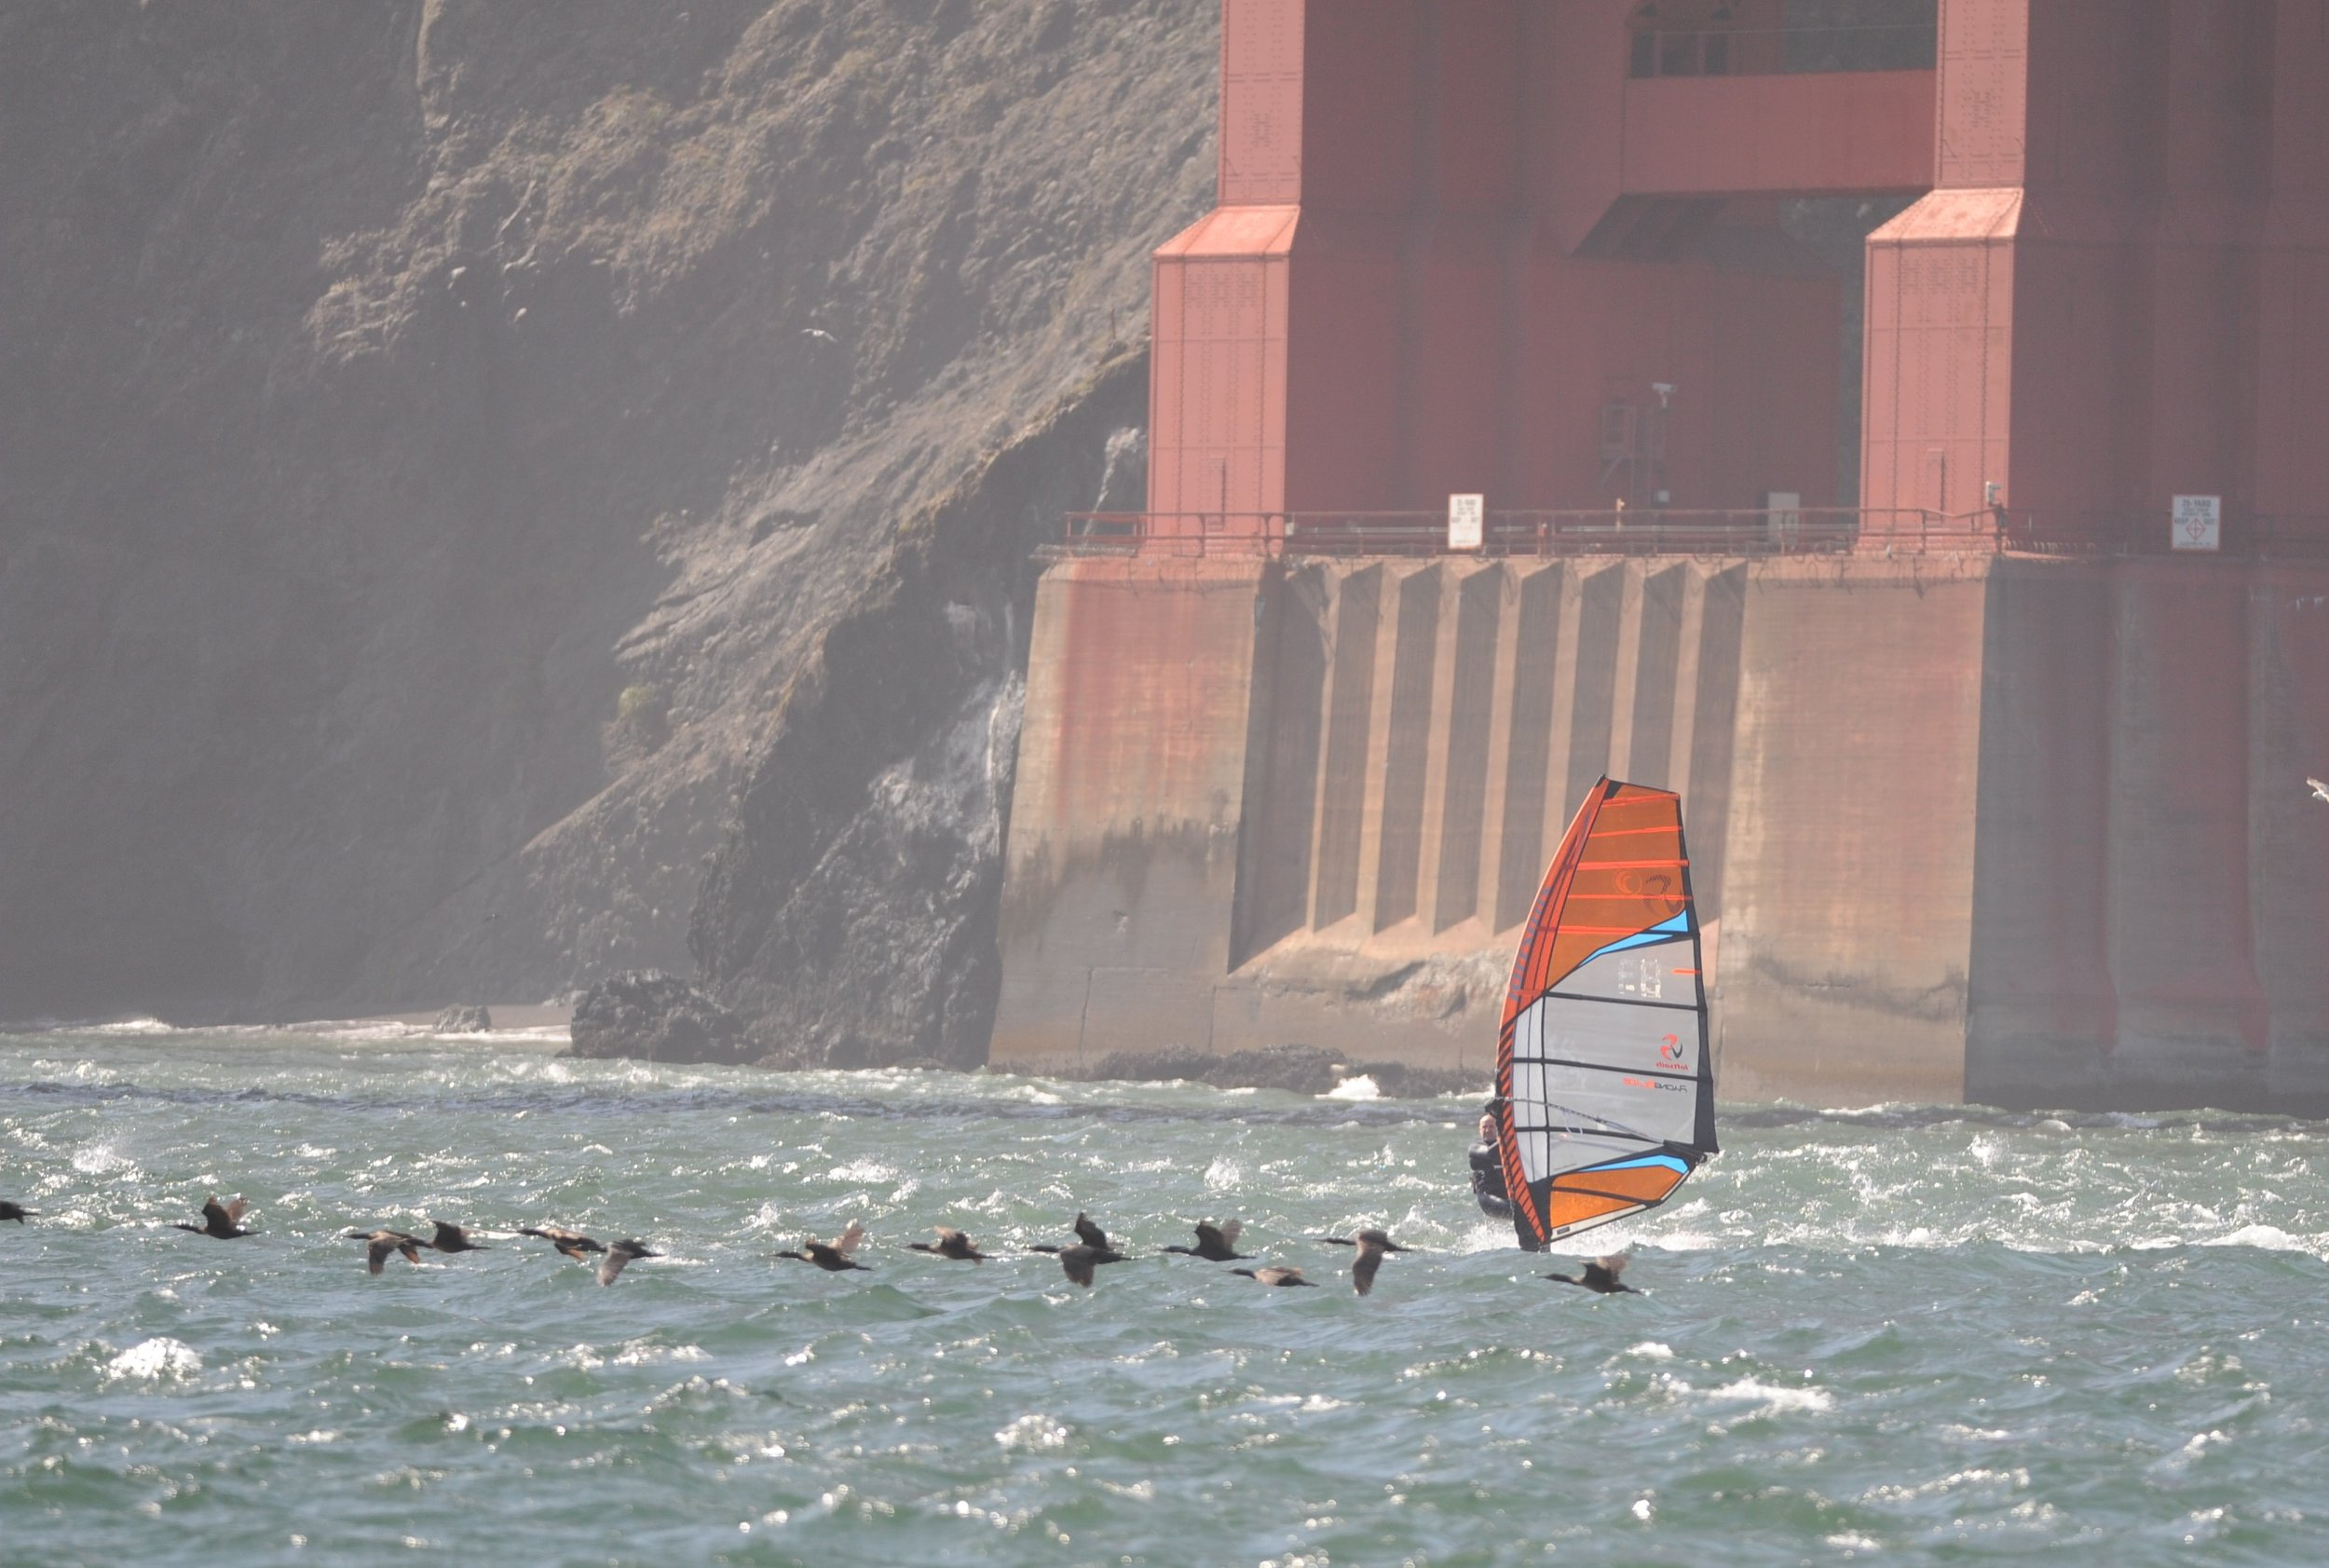 Windsurfer underneath the Golden Gate Bridge.